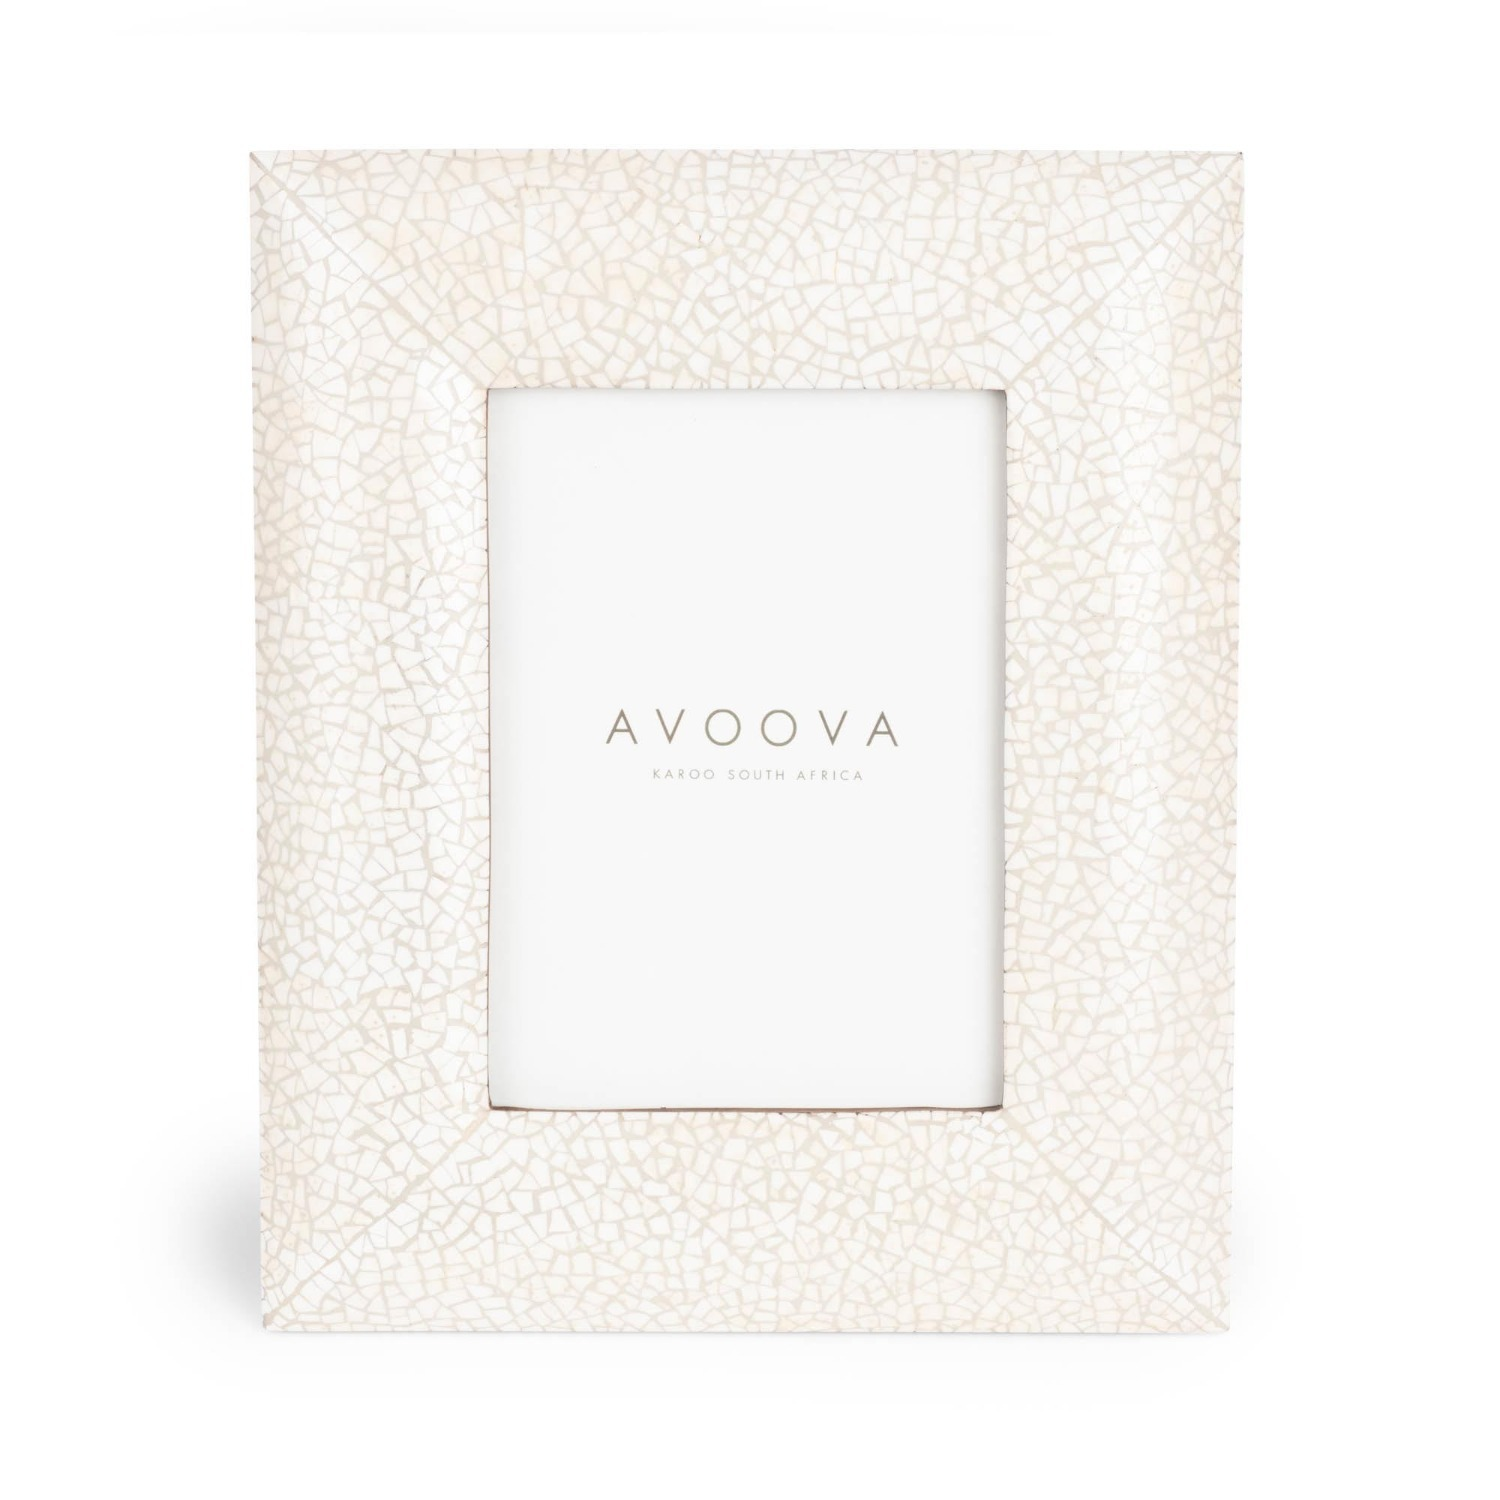 Avoova Luxury African Picture Frame - image-1